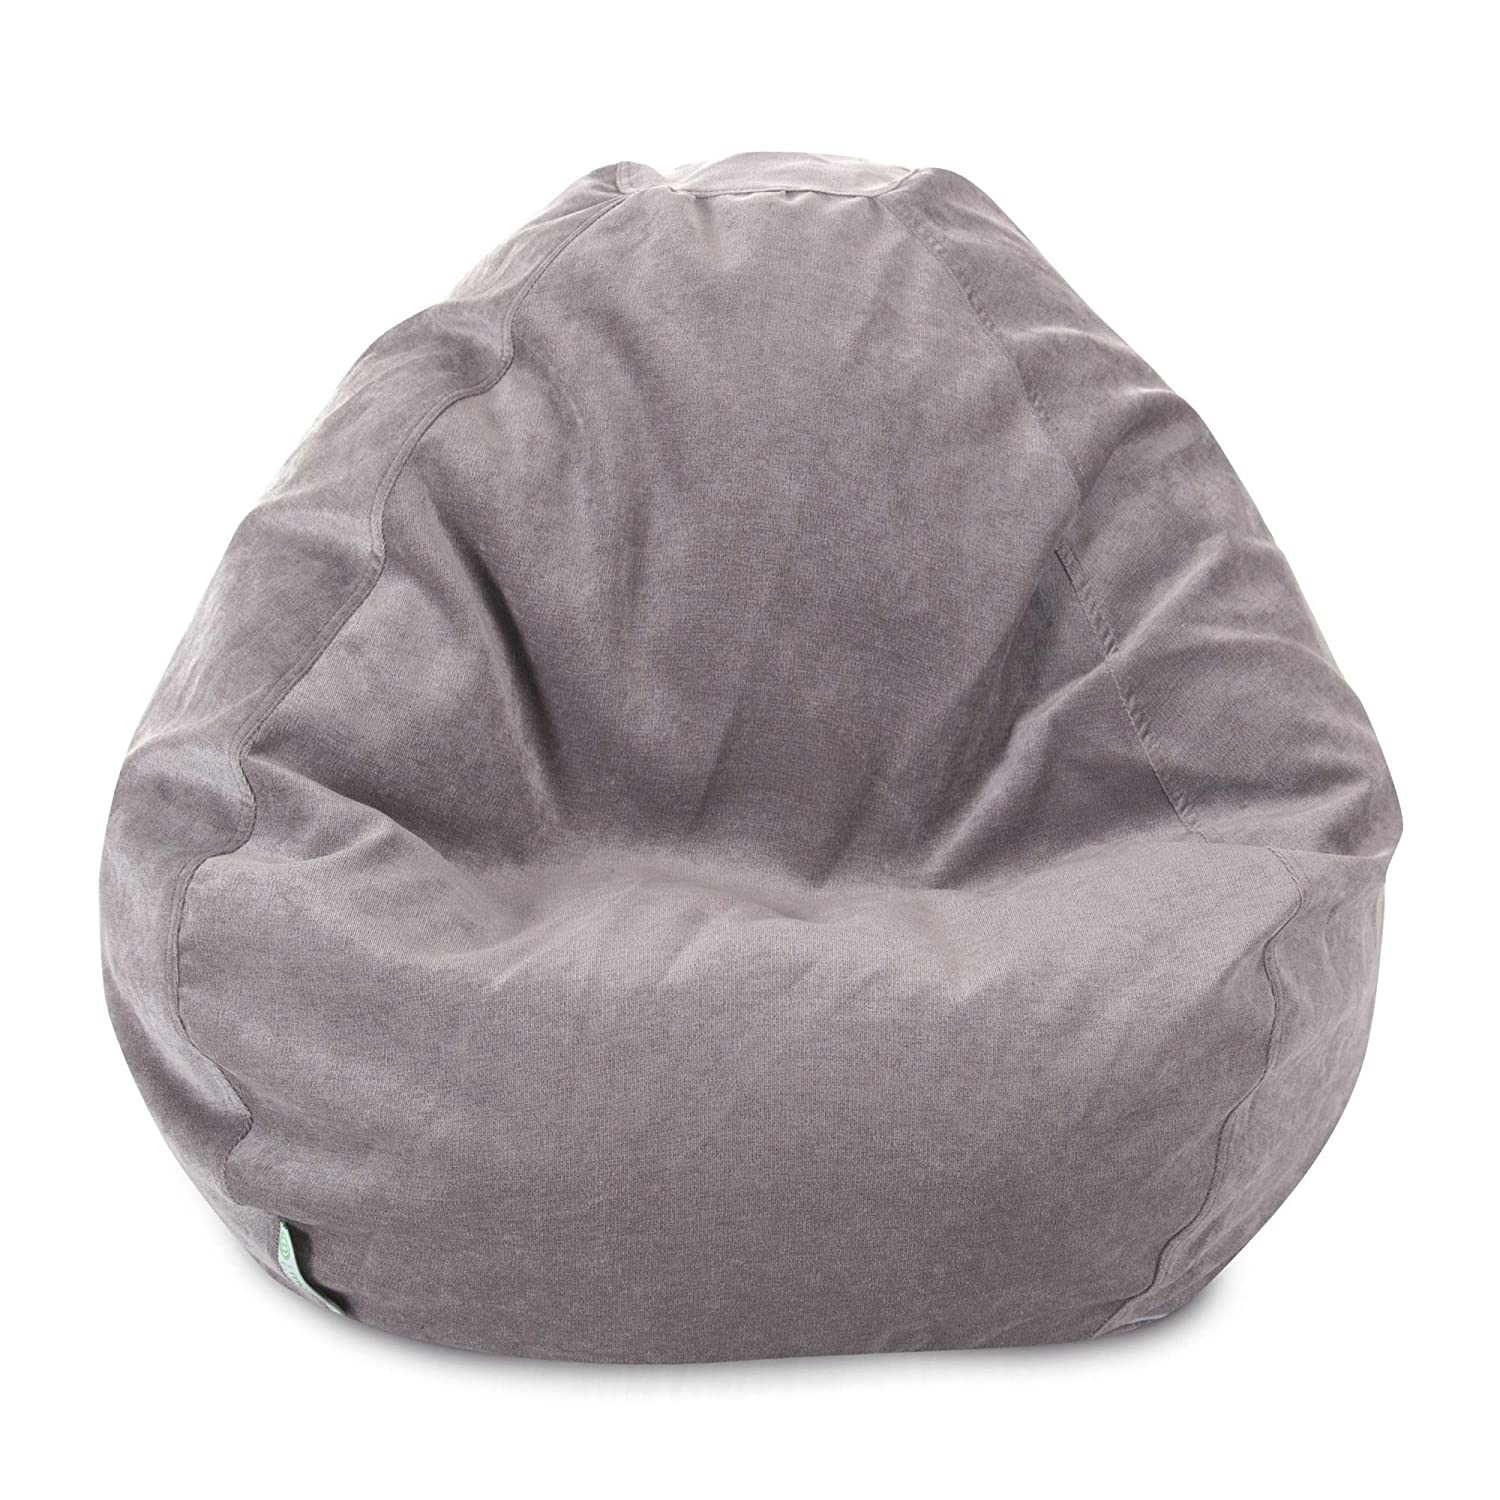 Majestic Home Goods Classic Bean Bag Chair Villa Giant Classic Bean Bags for Small Adults and Kids 28 x 28 x 22 Inches Vintage Gray